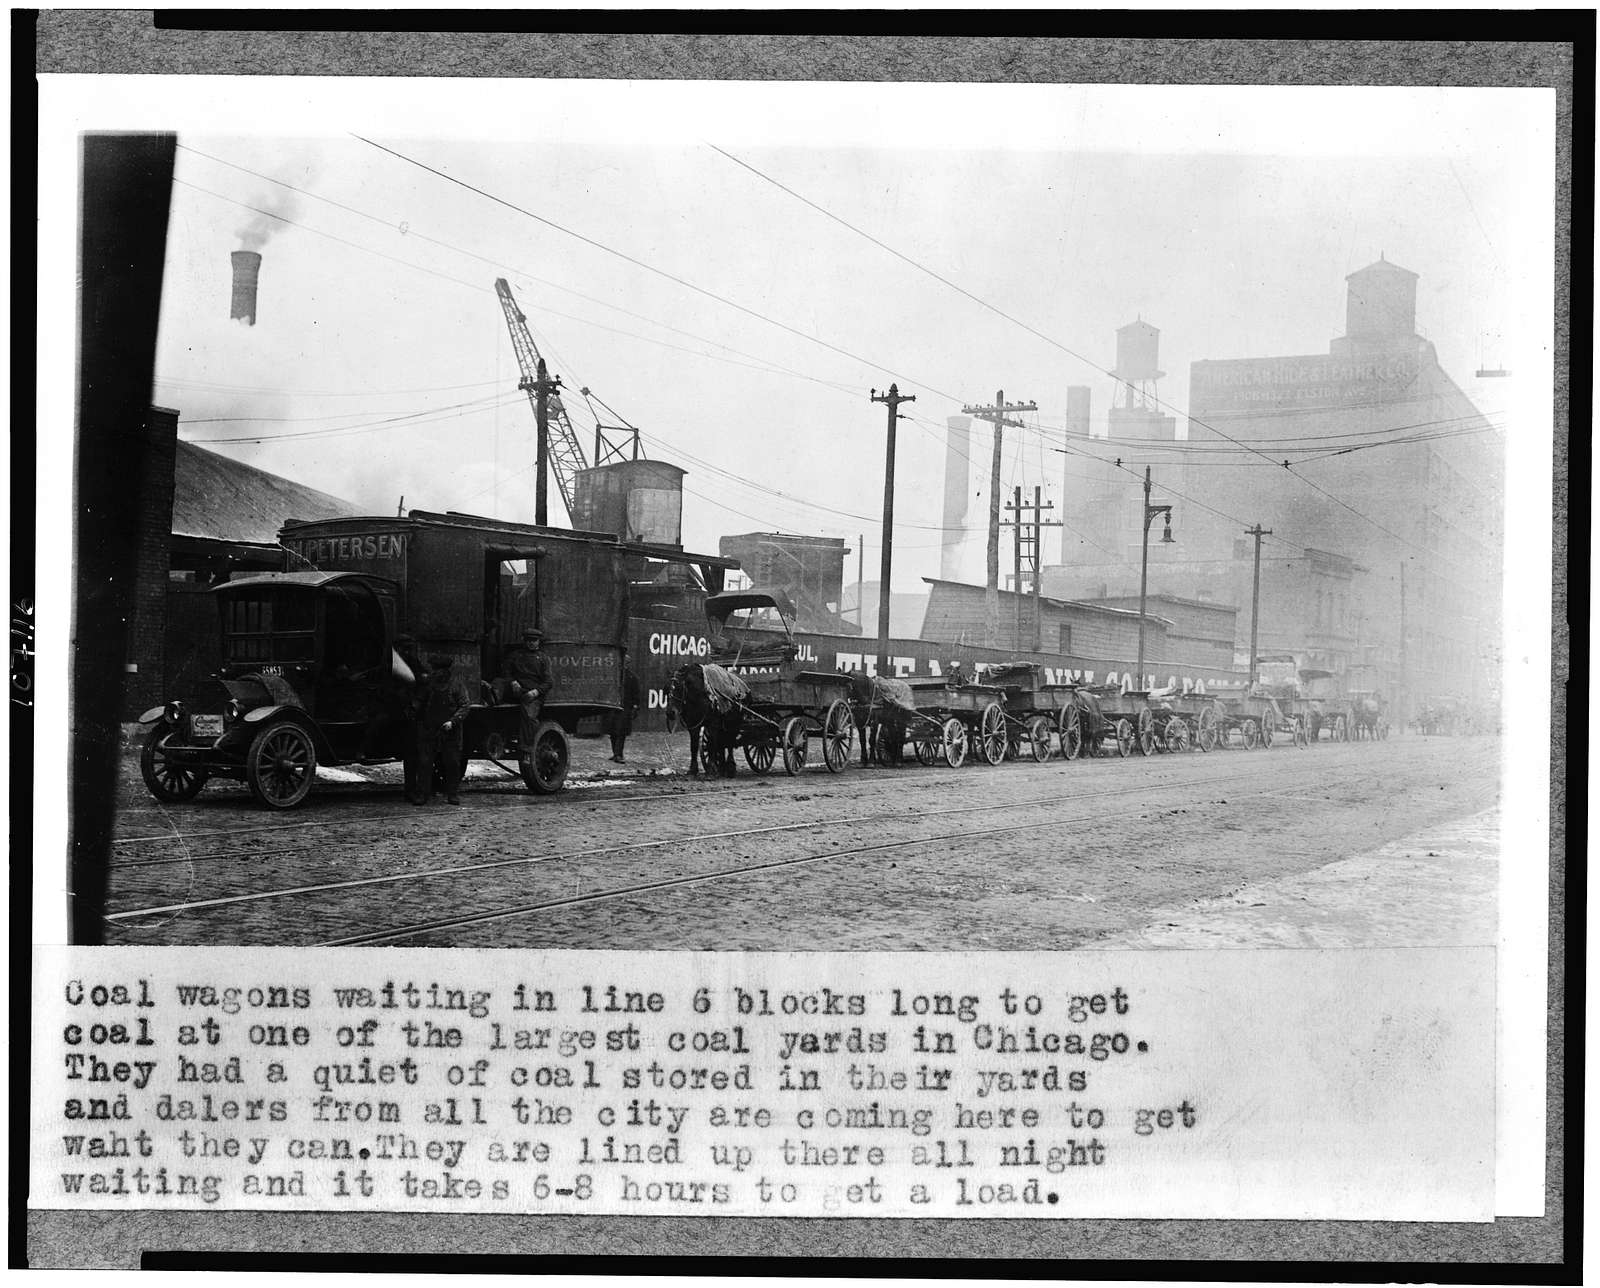 Coal wagons waiting in line 6 blocks long to get coal at one of the largest coal yards in Chicago ...